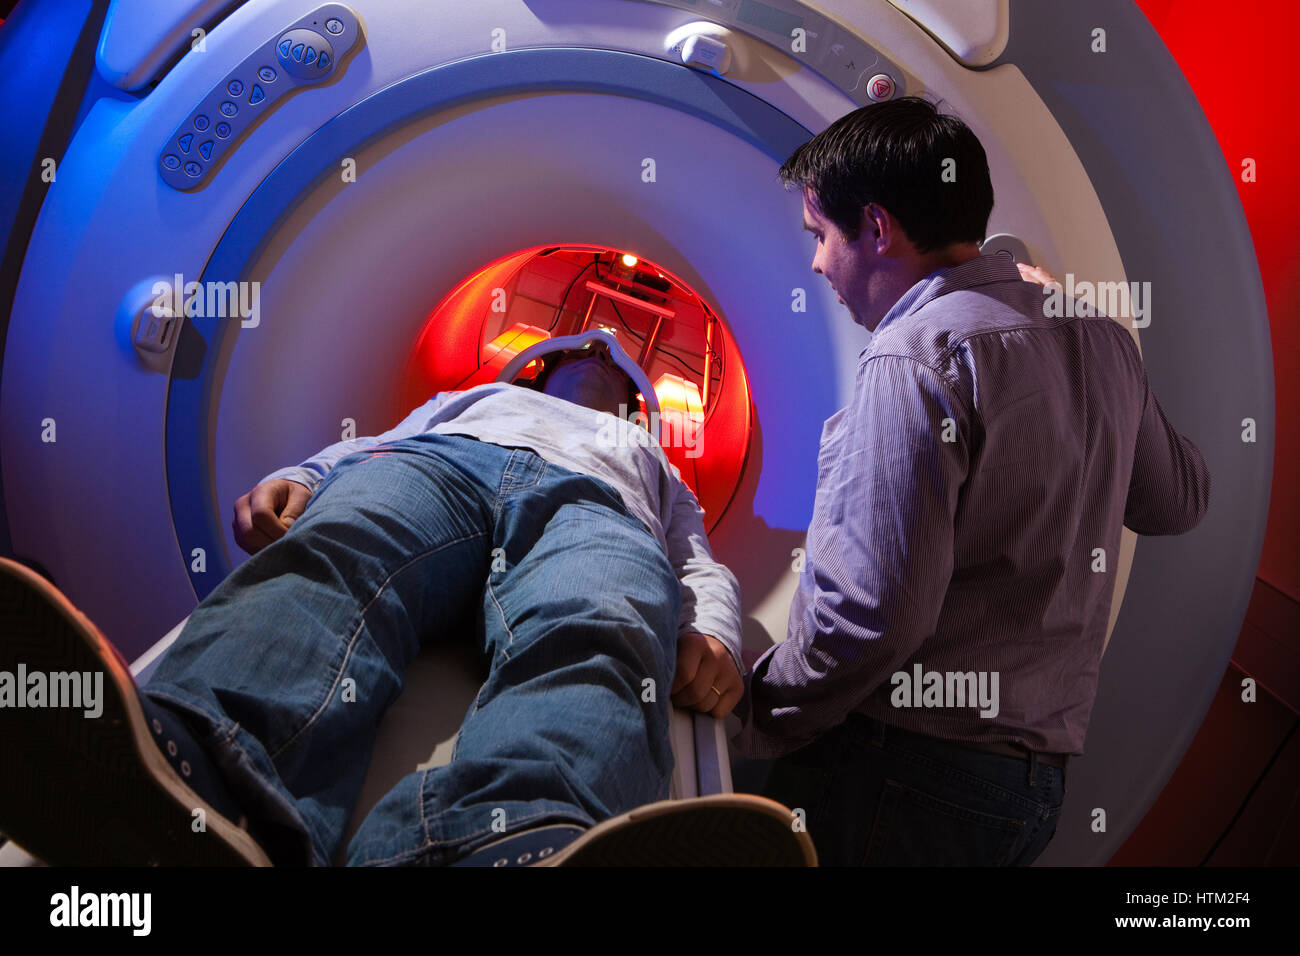 Patient undergoing MRI scan at Cardiff University School of Psychology, Cardiff, Wales, United Kingdom - Stock Image